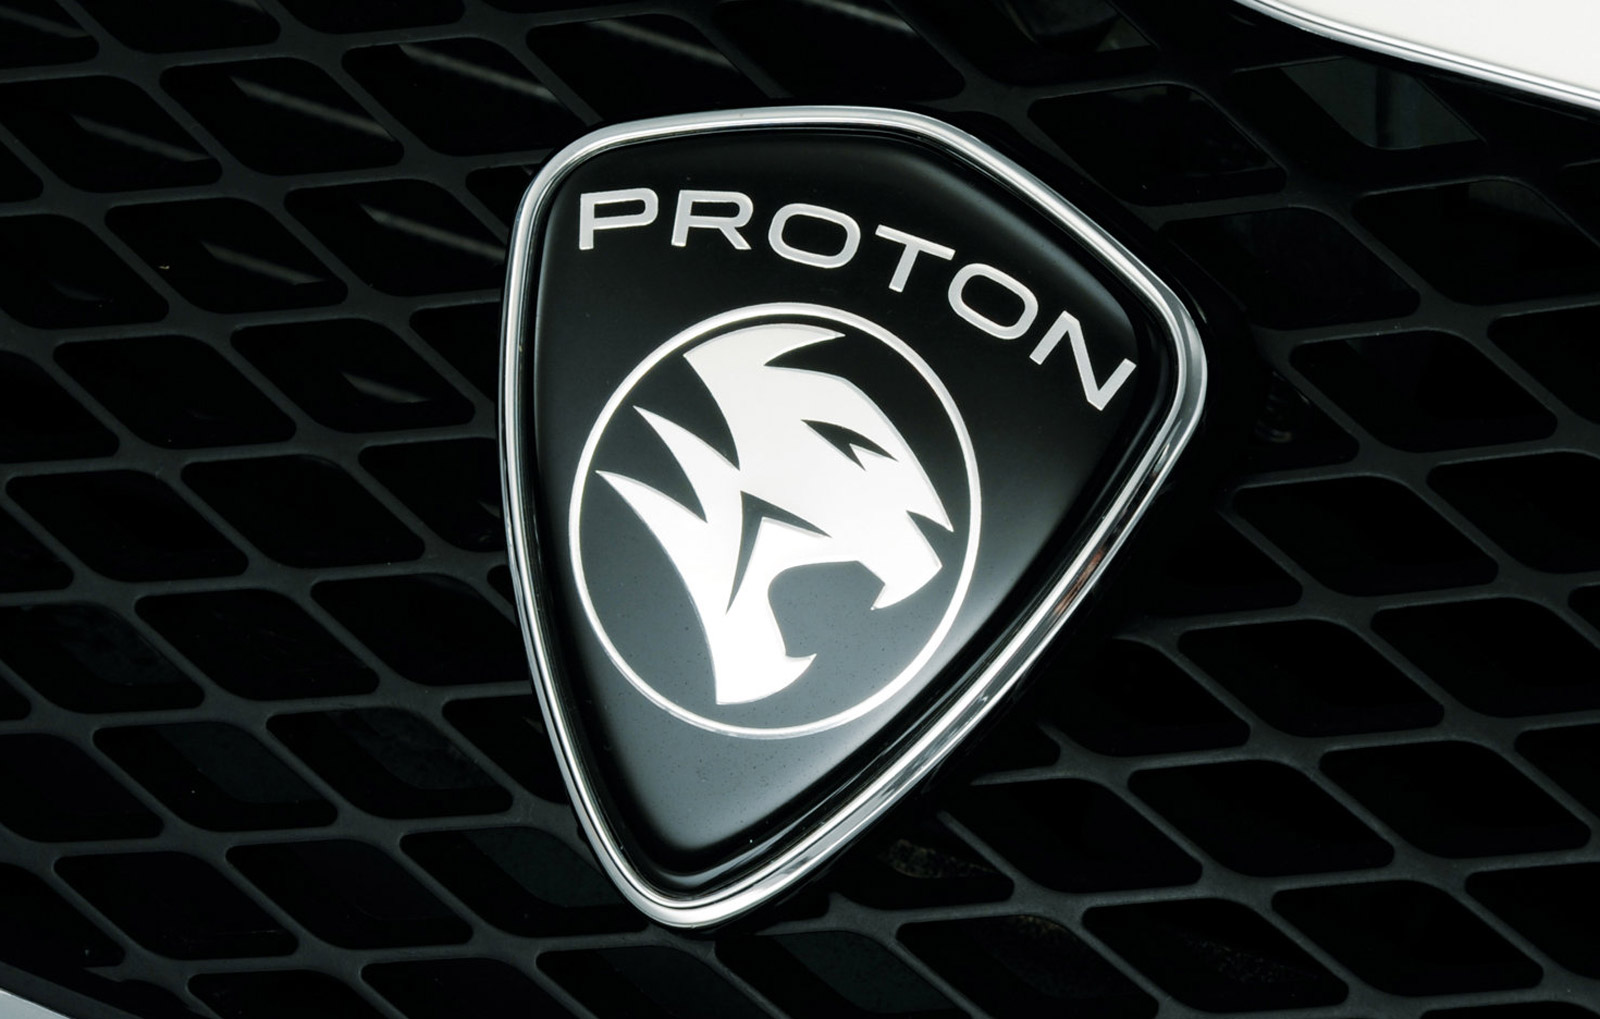 Lotus parent company Proton sold to Malaysian conglomerate DRB-Hicom